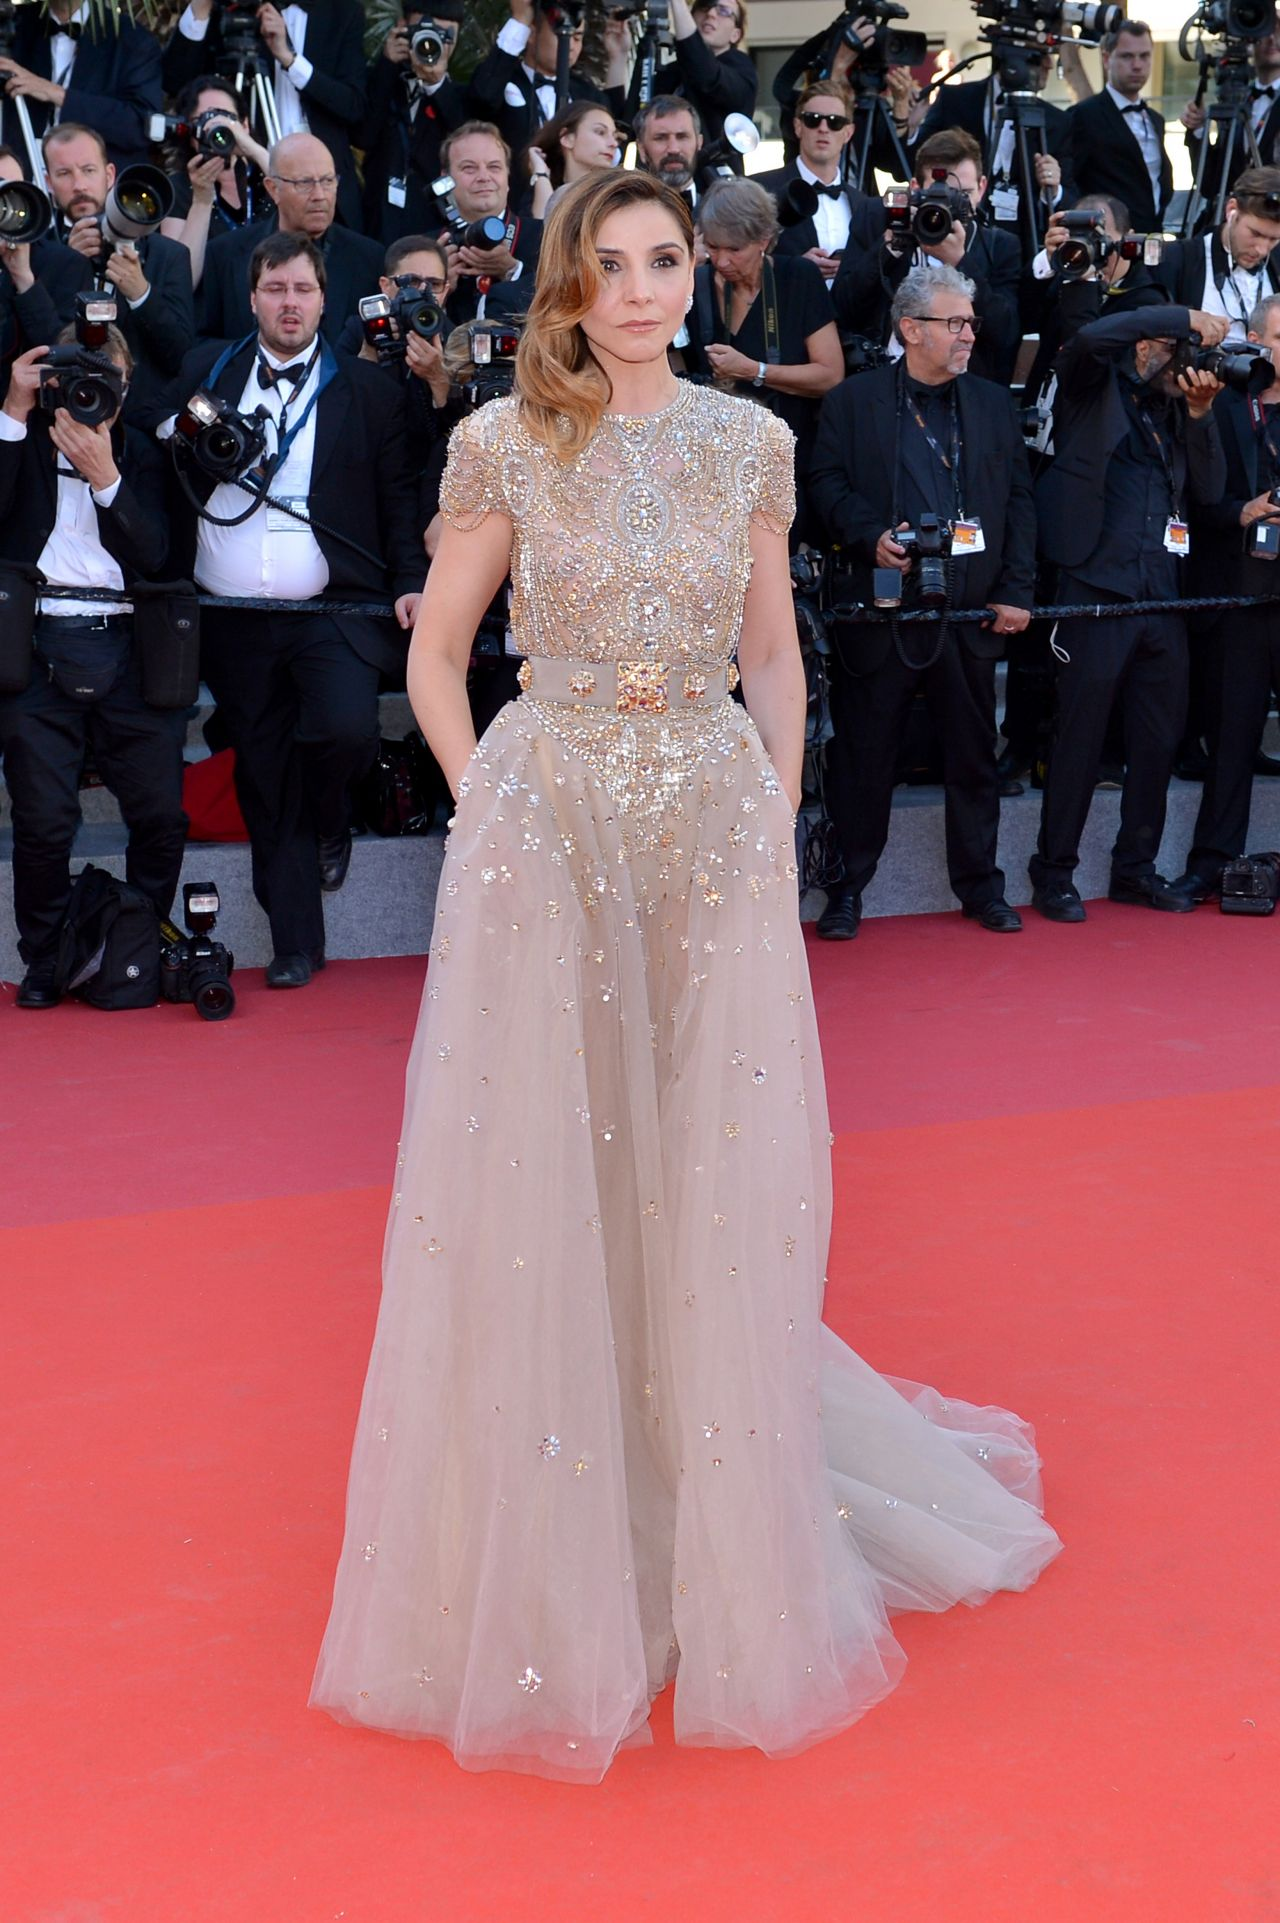 Cannes 2017 Heidi Klum Continues A Cannes Tradition In: 70th Cannes Film Festival Opening